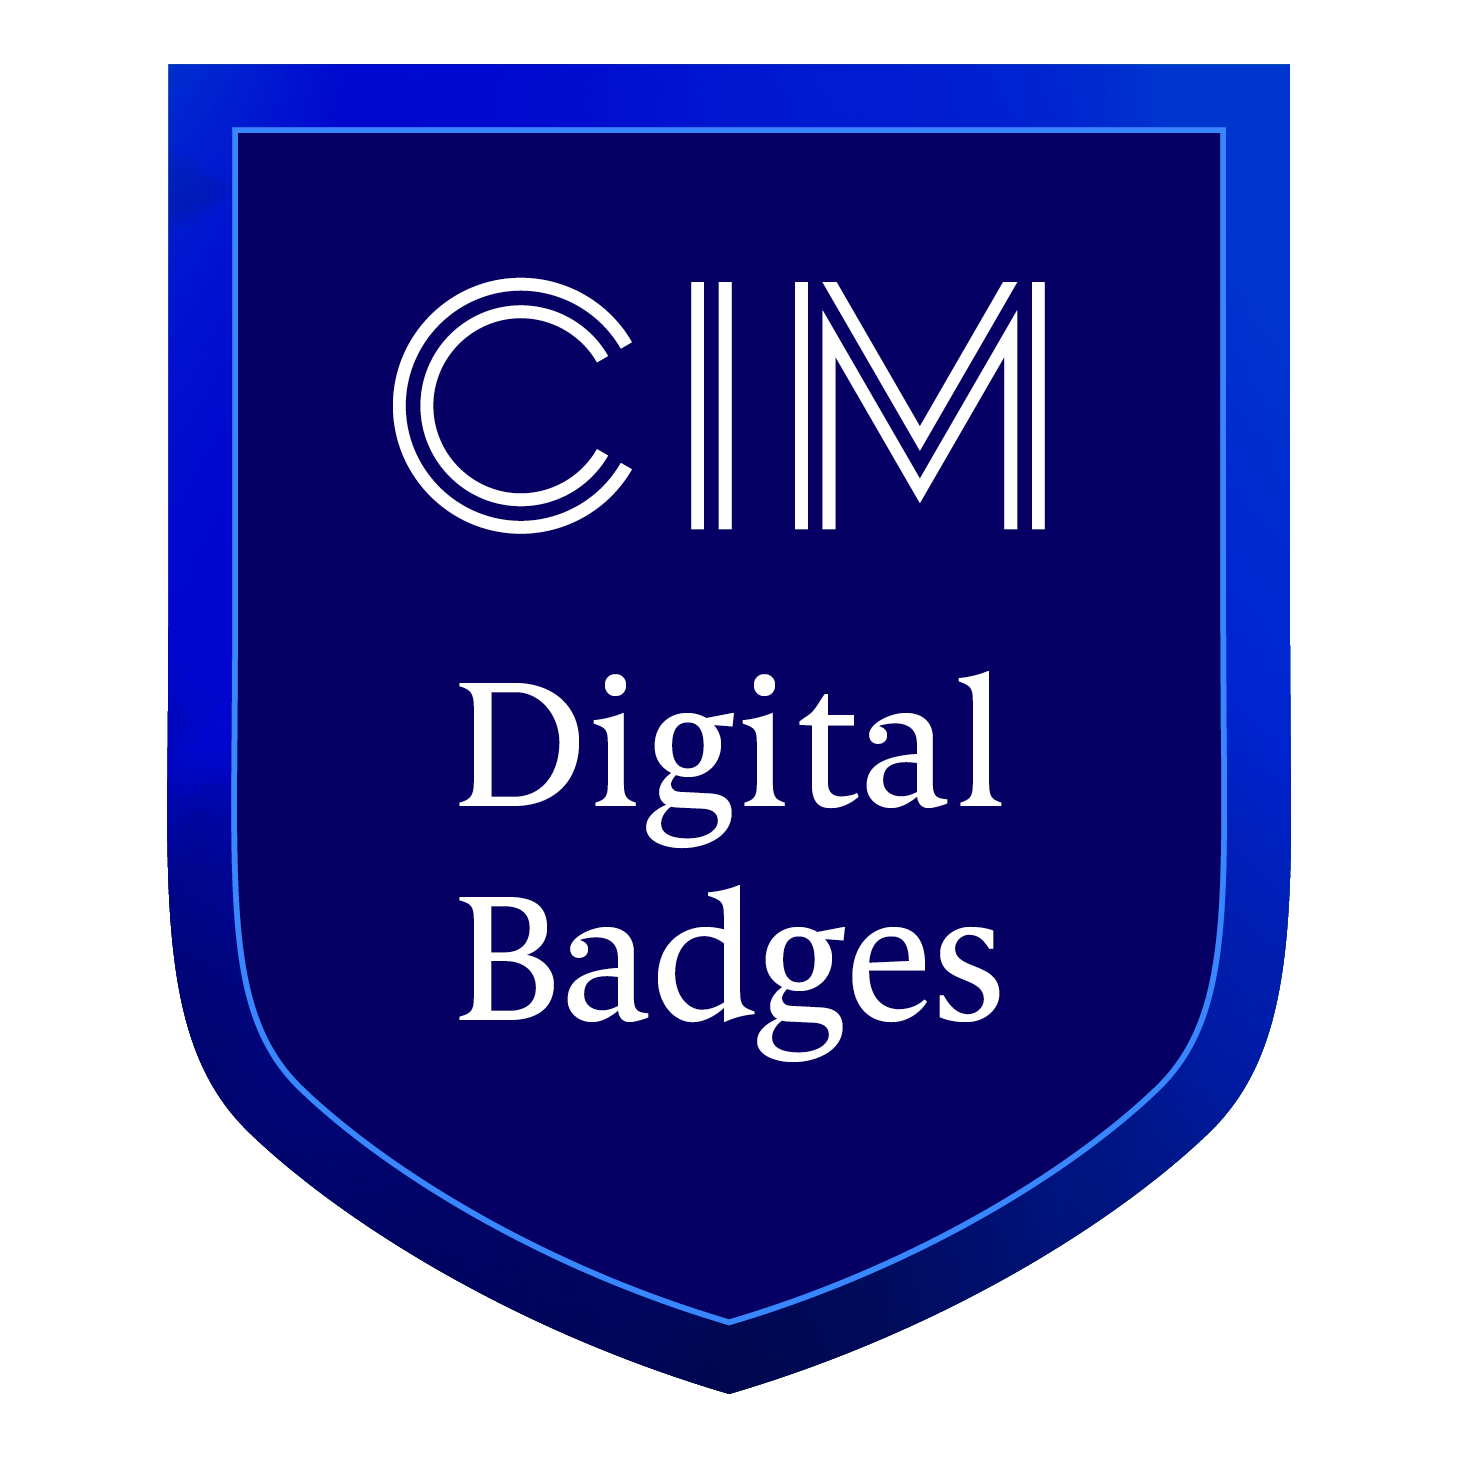 CIM Digital Badges